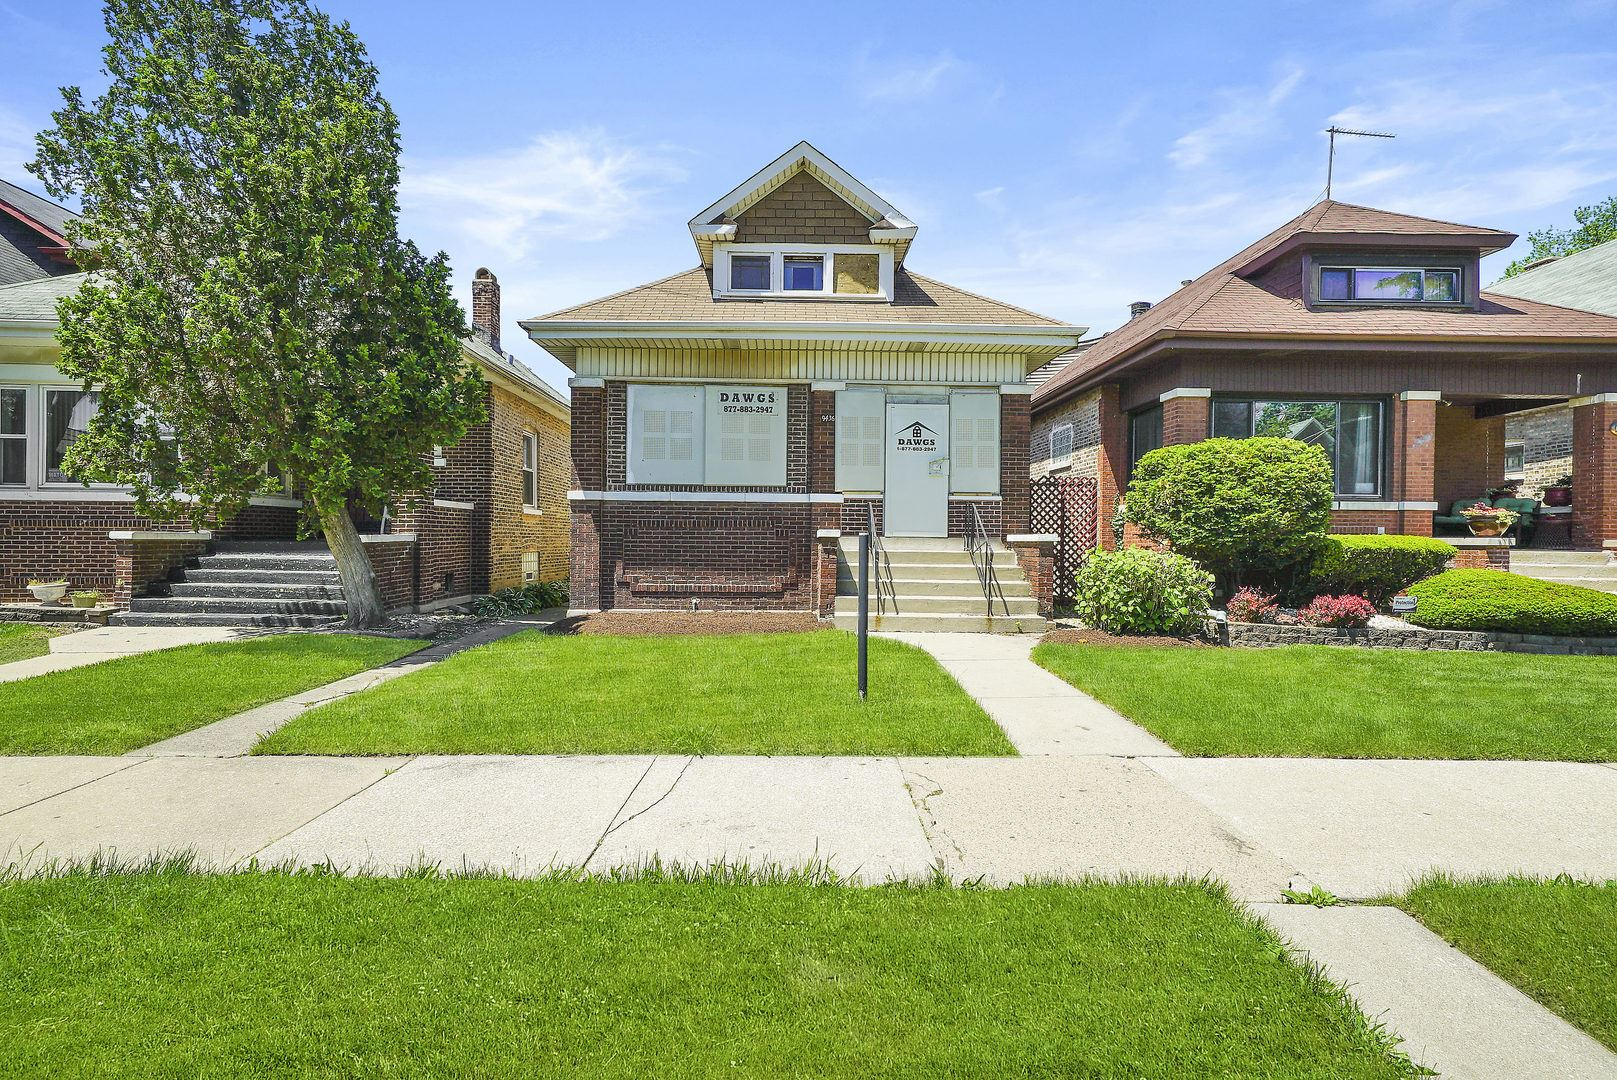 9436 S St Lawrence Avenue, Chicago, IL 60619 - #: 10740256